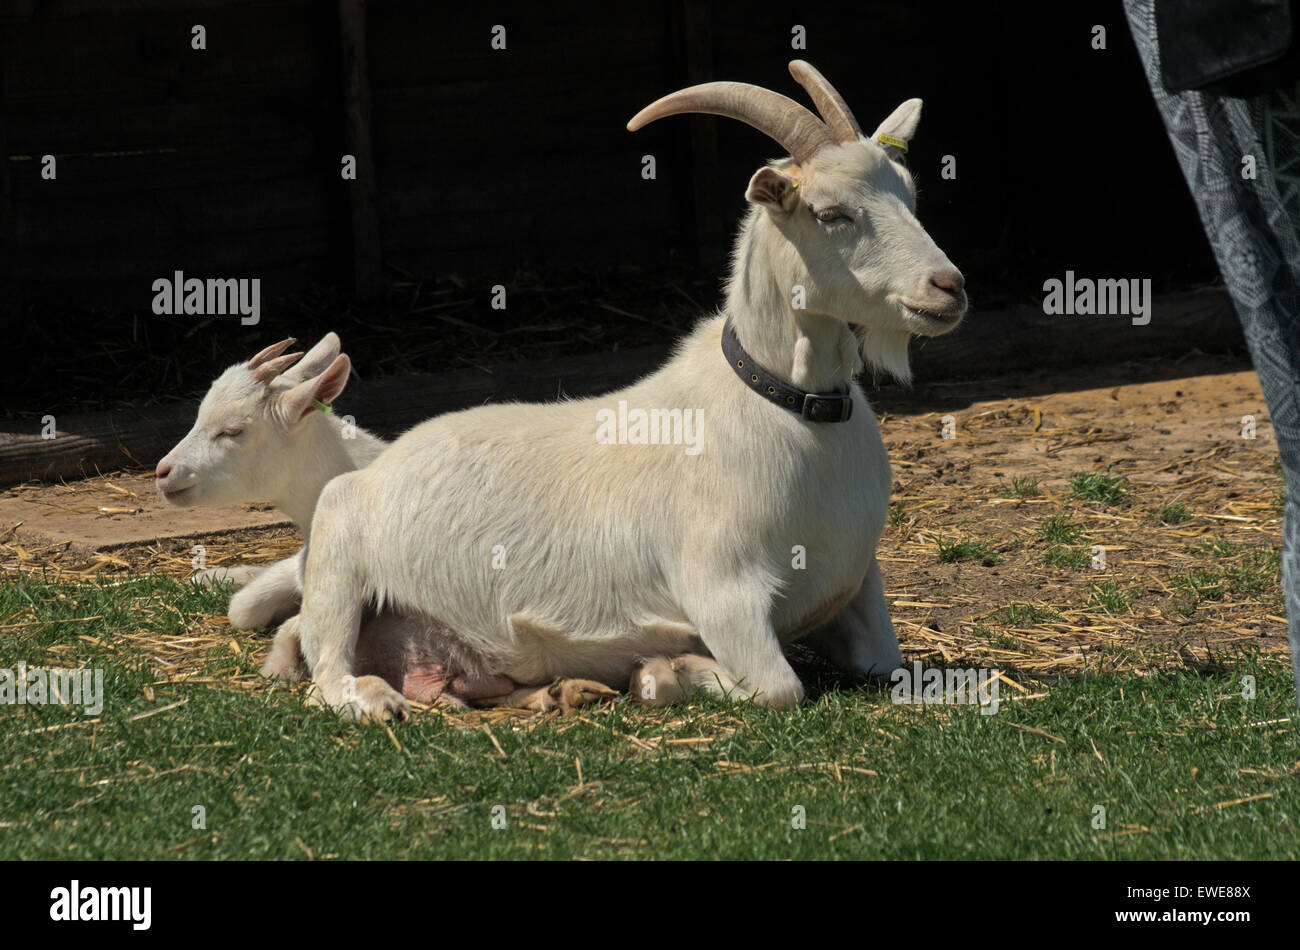 Saanen goats: photos, description and characteristics of the breed 65